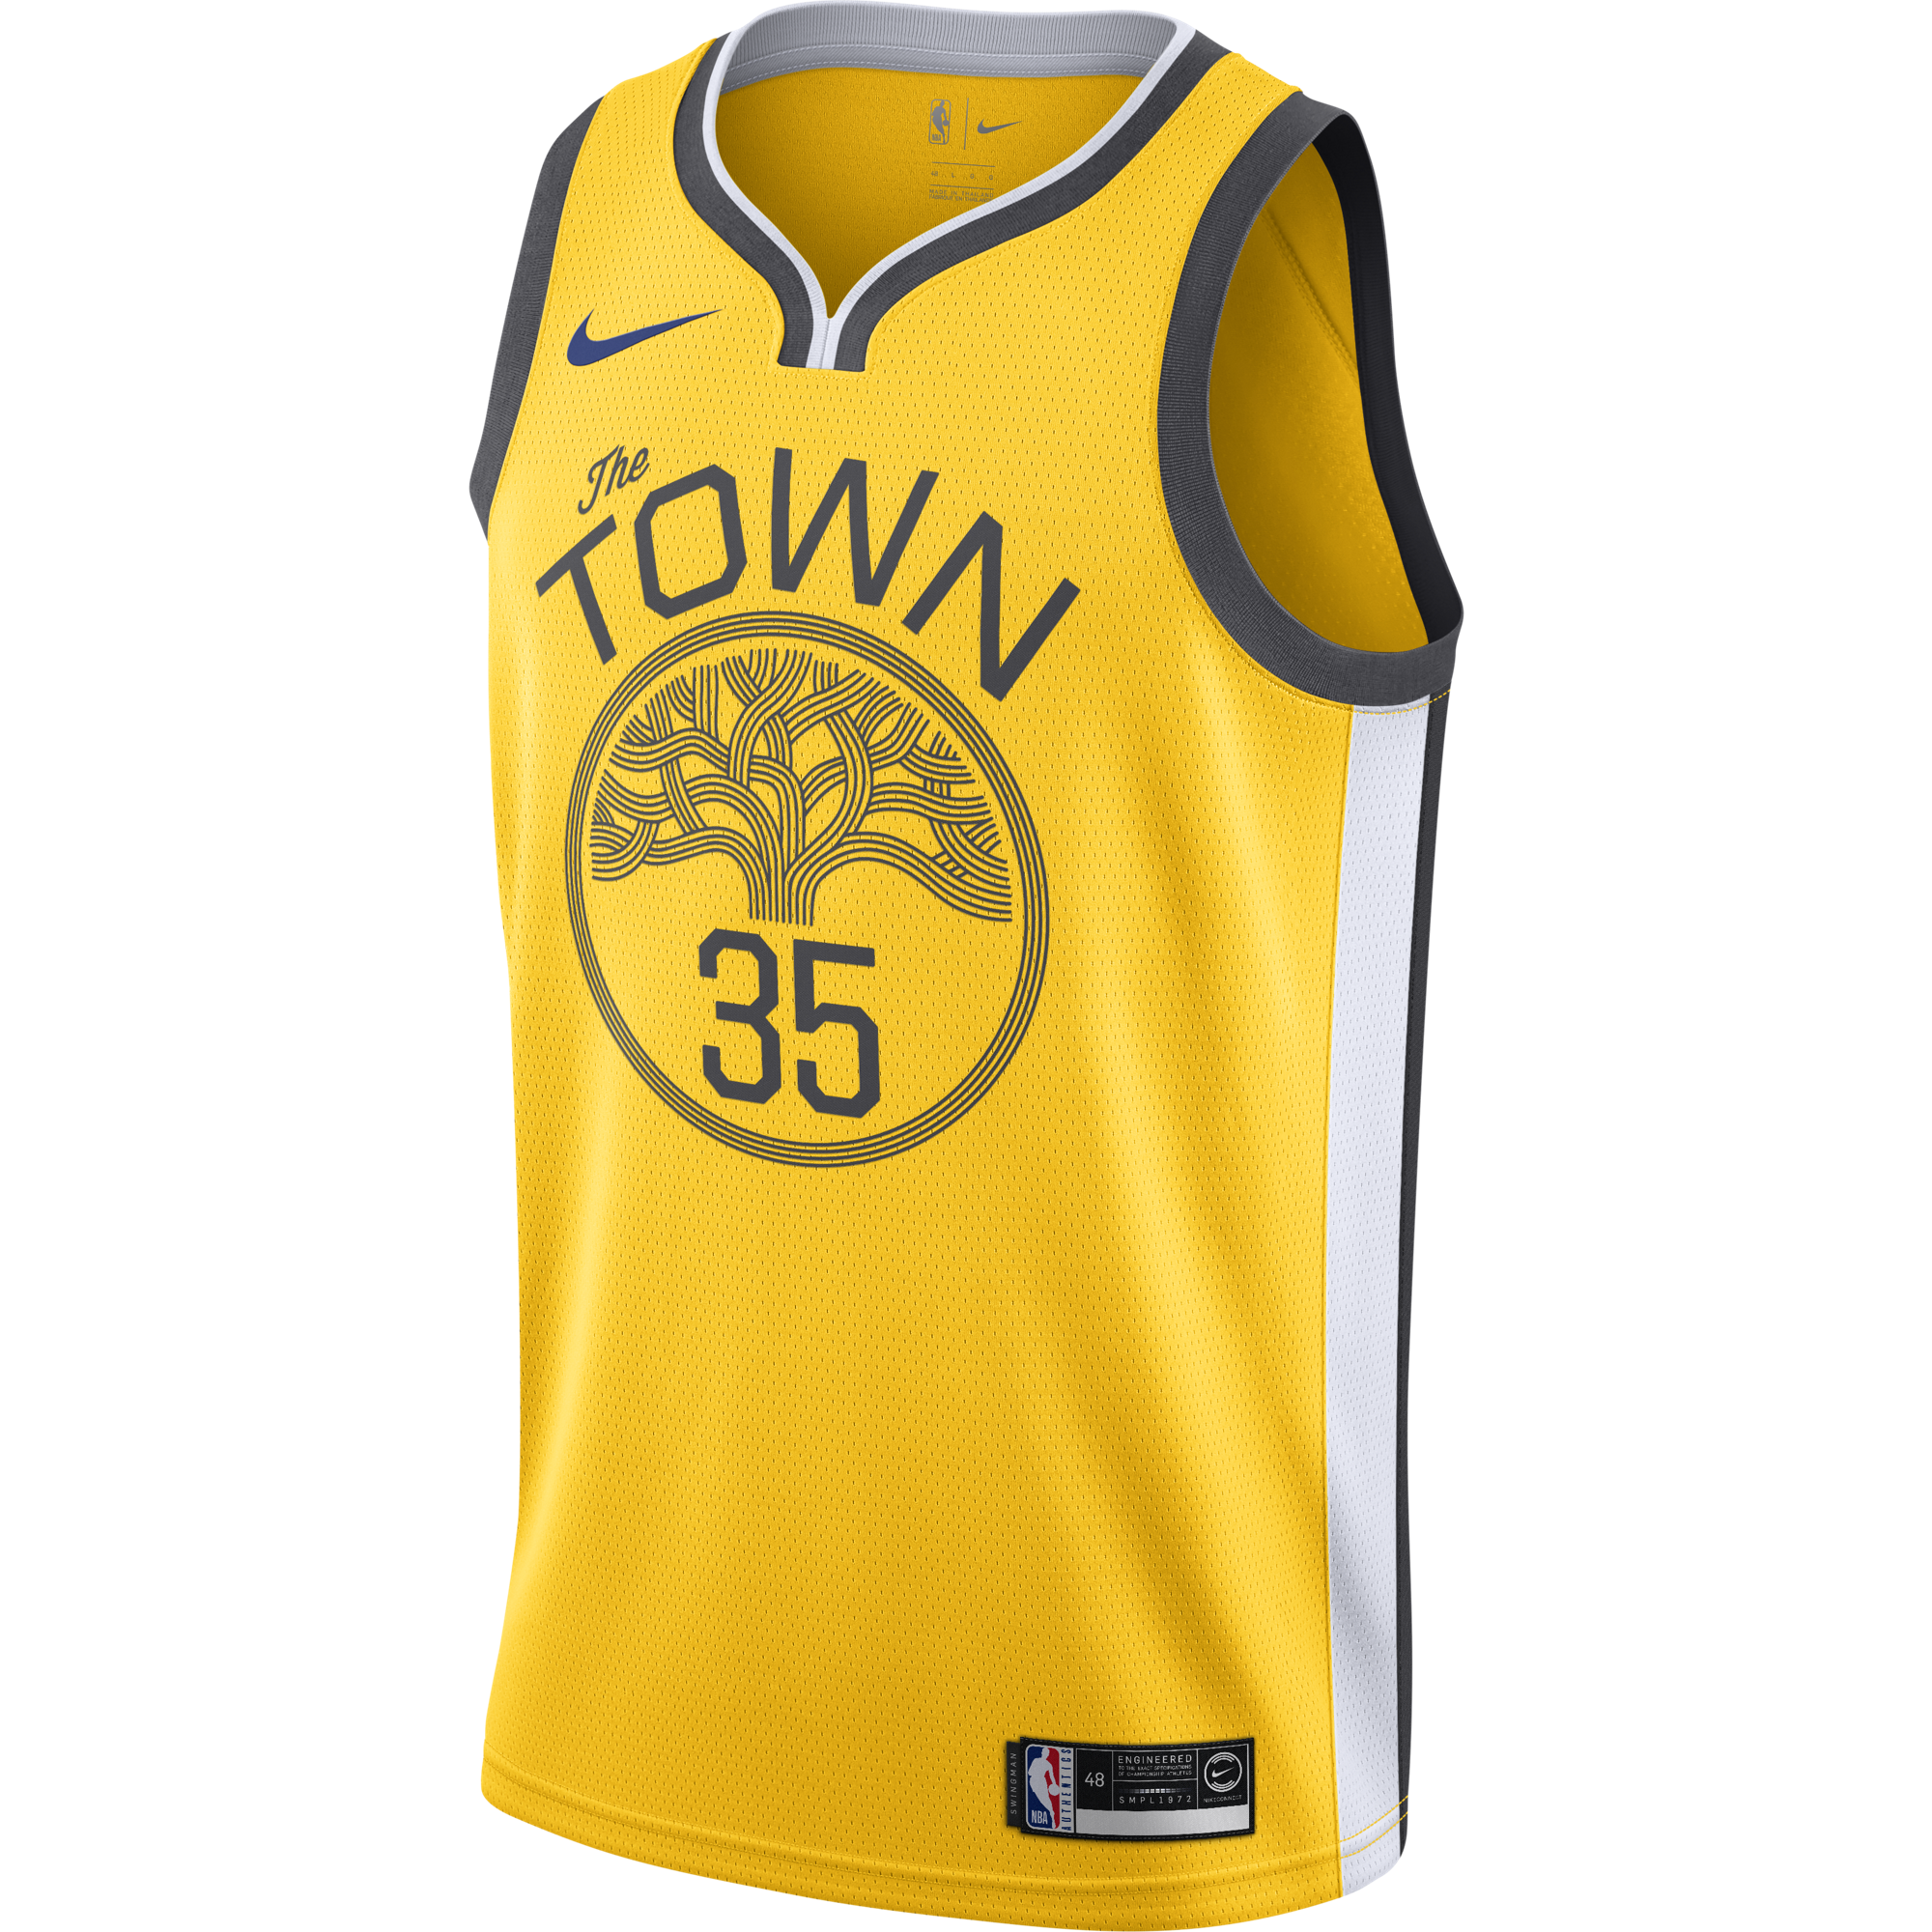 b18c04a329c8 NBA Earned Edition 2018  The jerseys and merch you ll want to buy ...